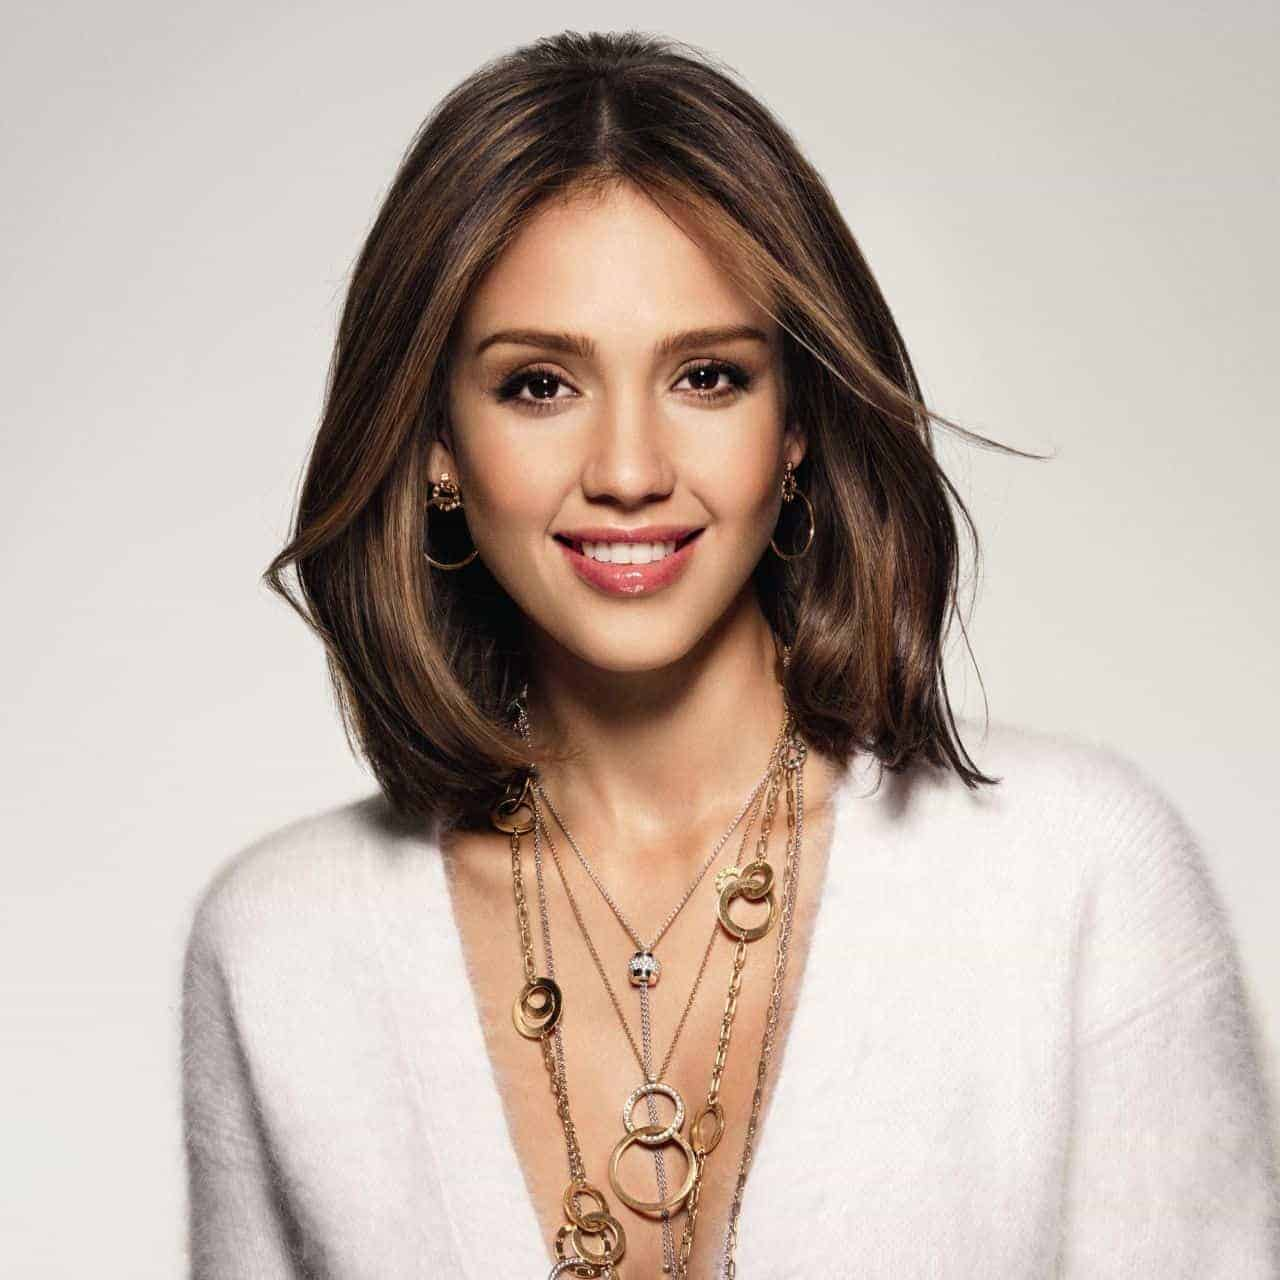 Jessica Alba Medium hairstyles for oval faces